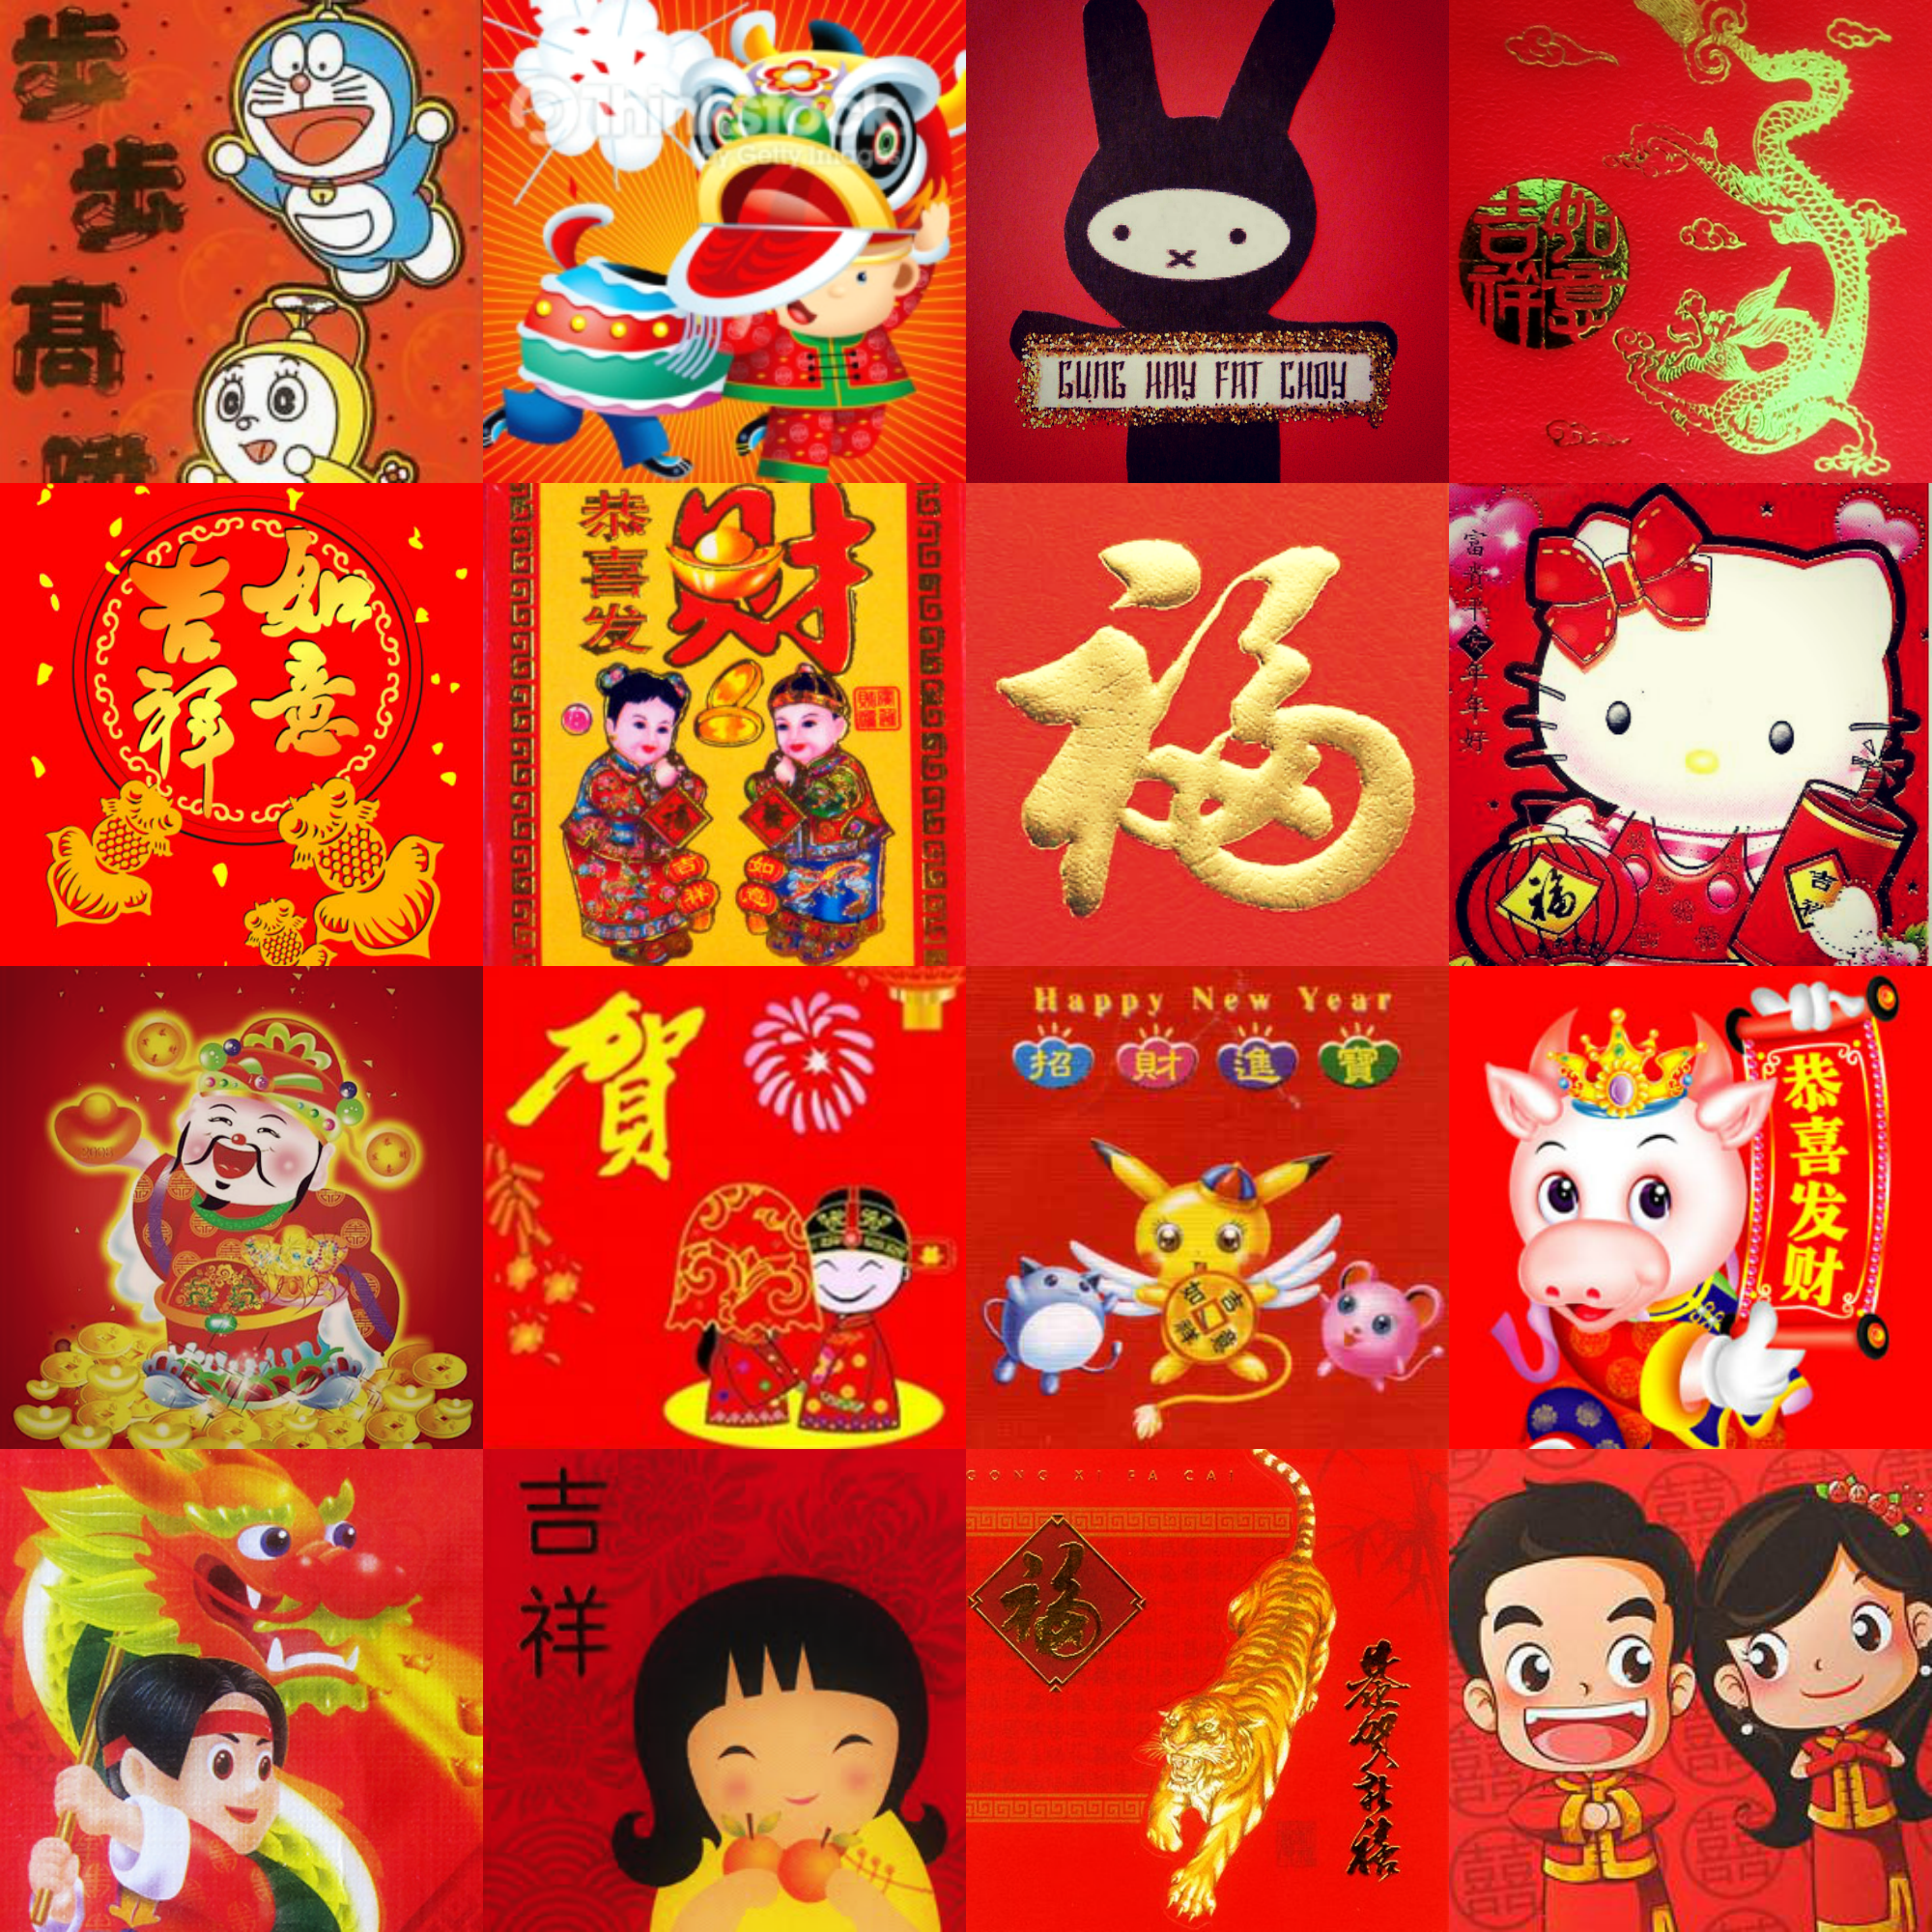 chinese new year red envelopes gallery - Red Envelopes Chinese New Year